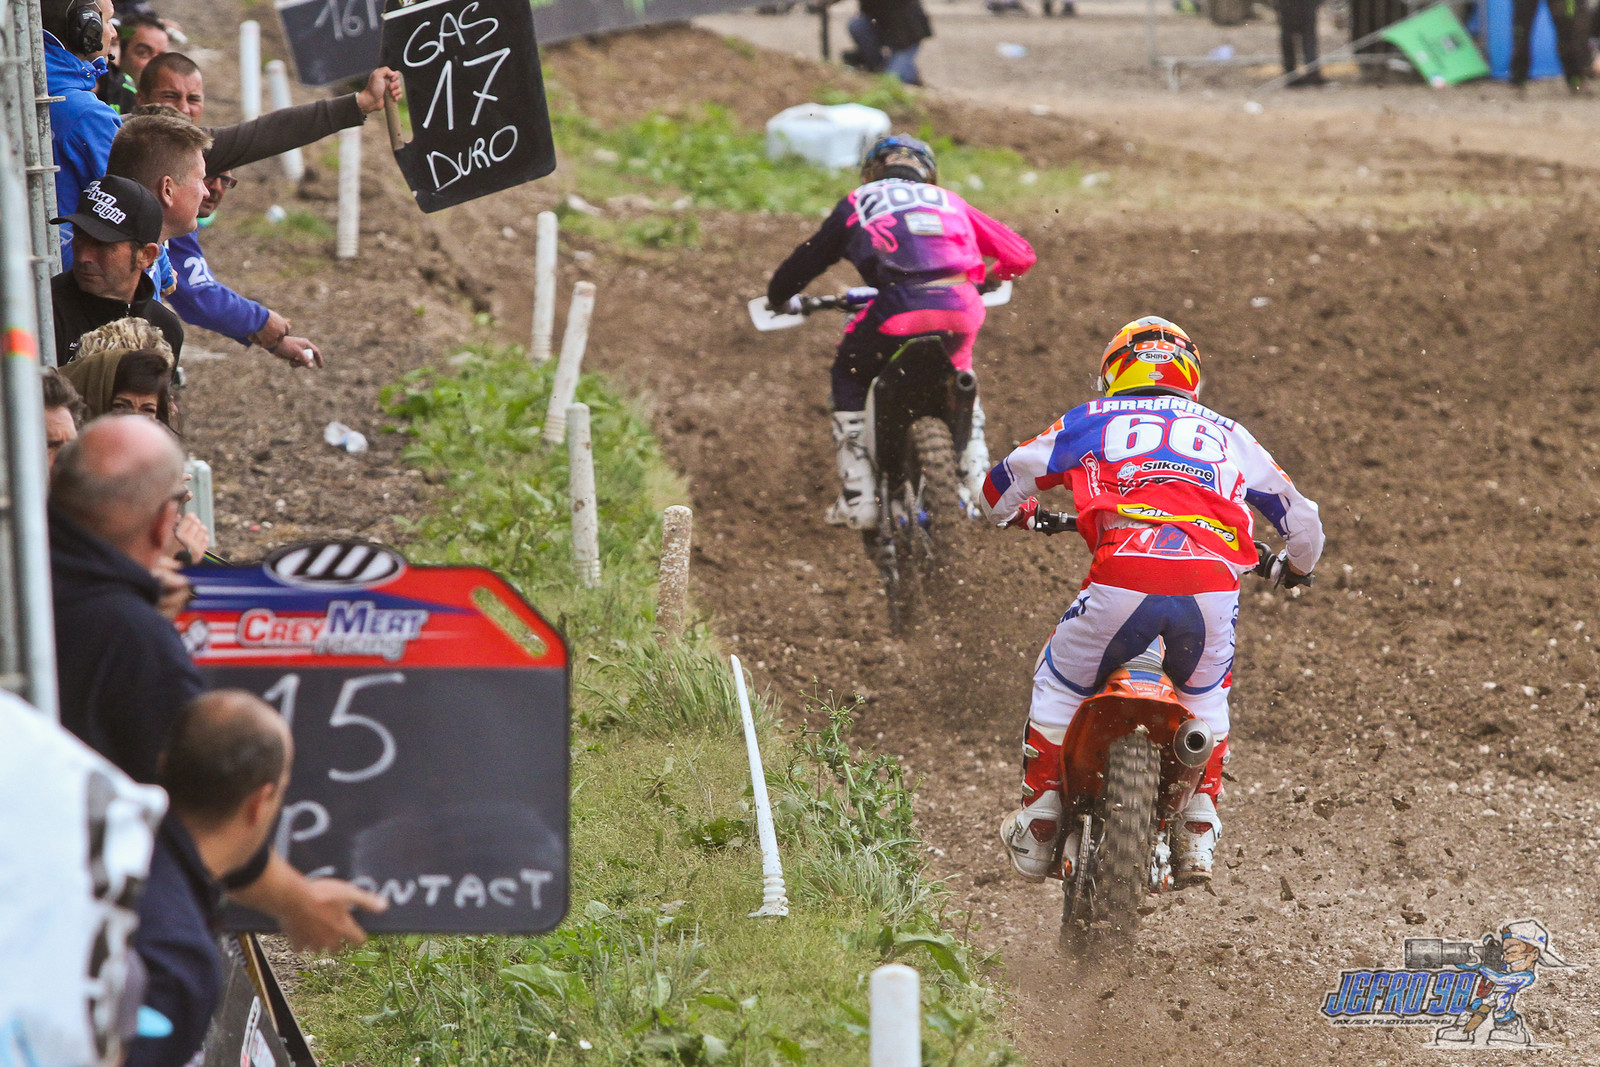 Iker Larrannago Olano - Photo Gallery: MXGP of Great Britain - Motocross Pictures - Vital MX